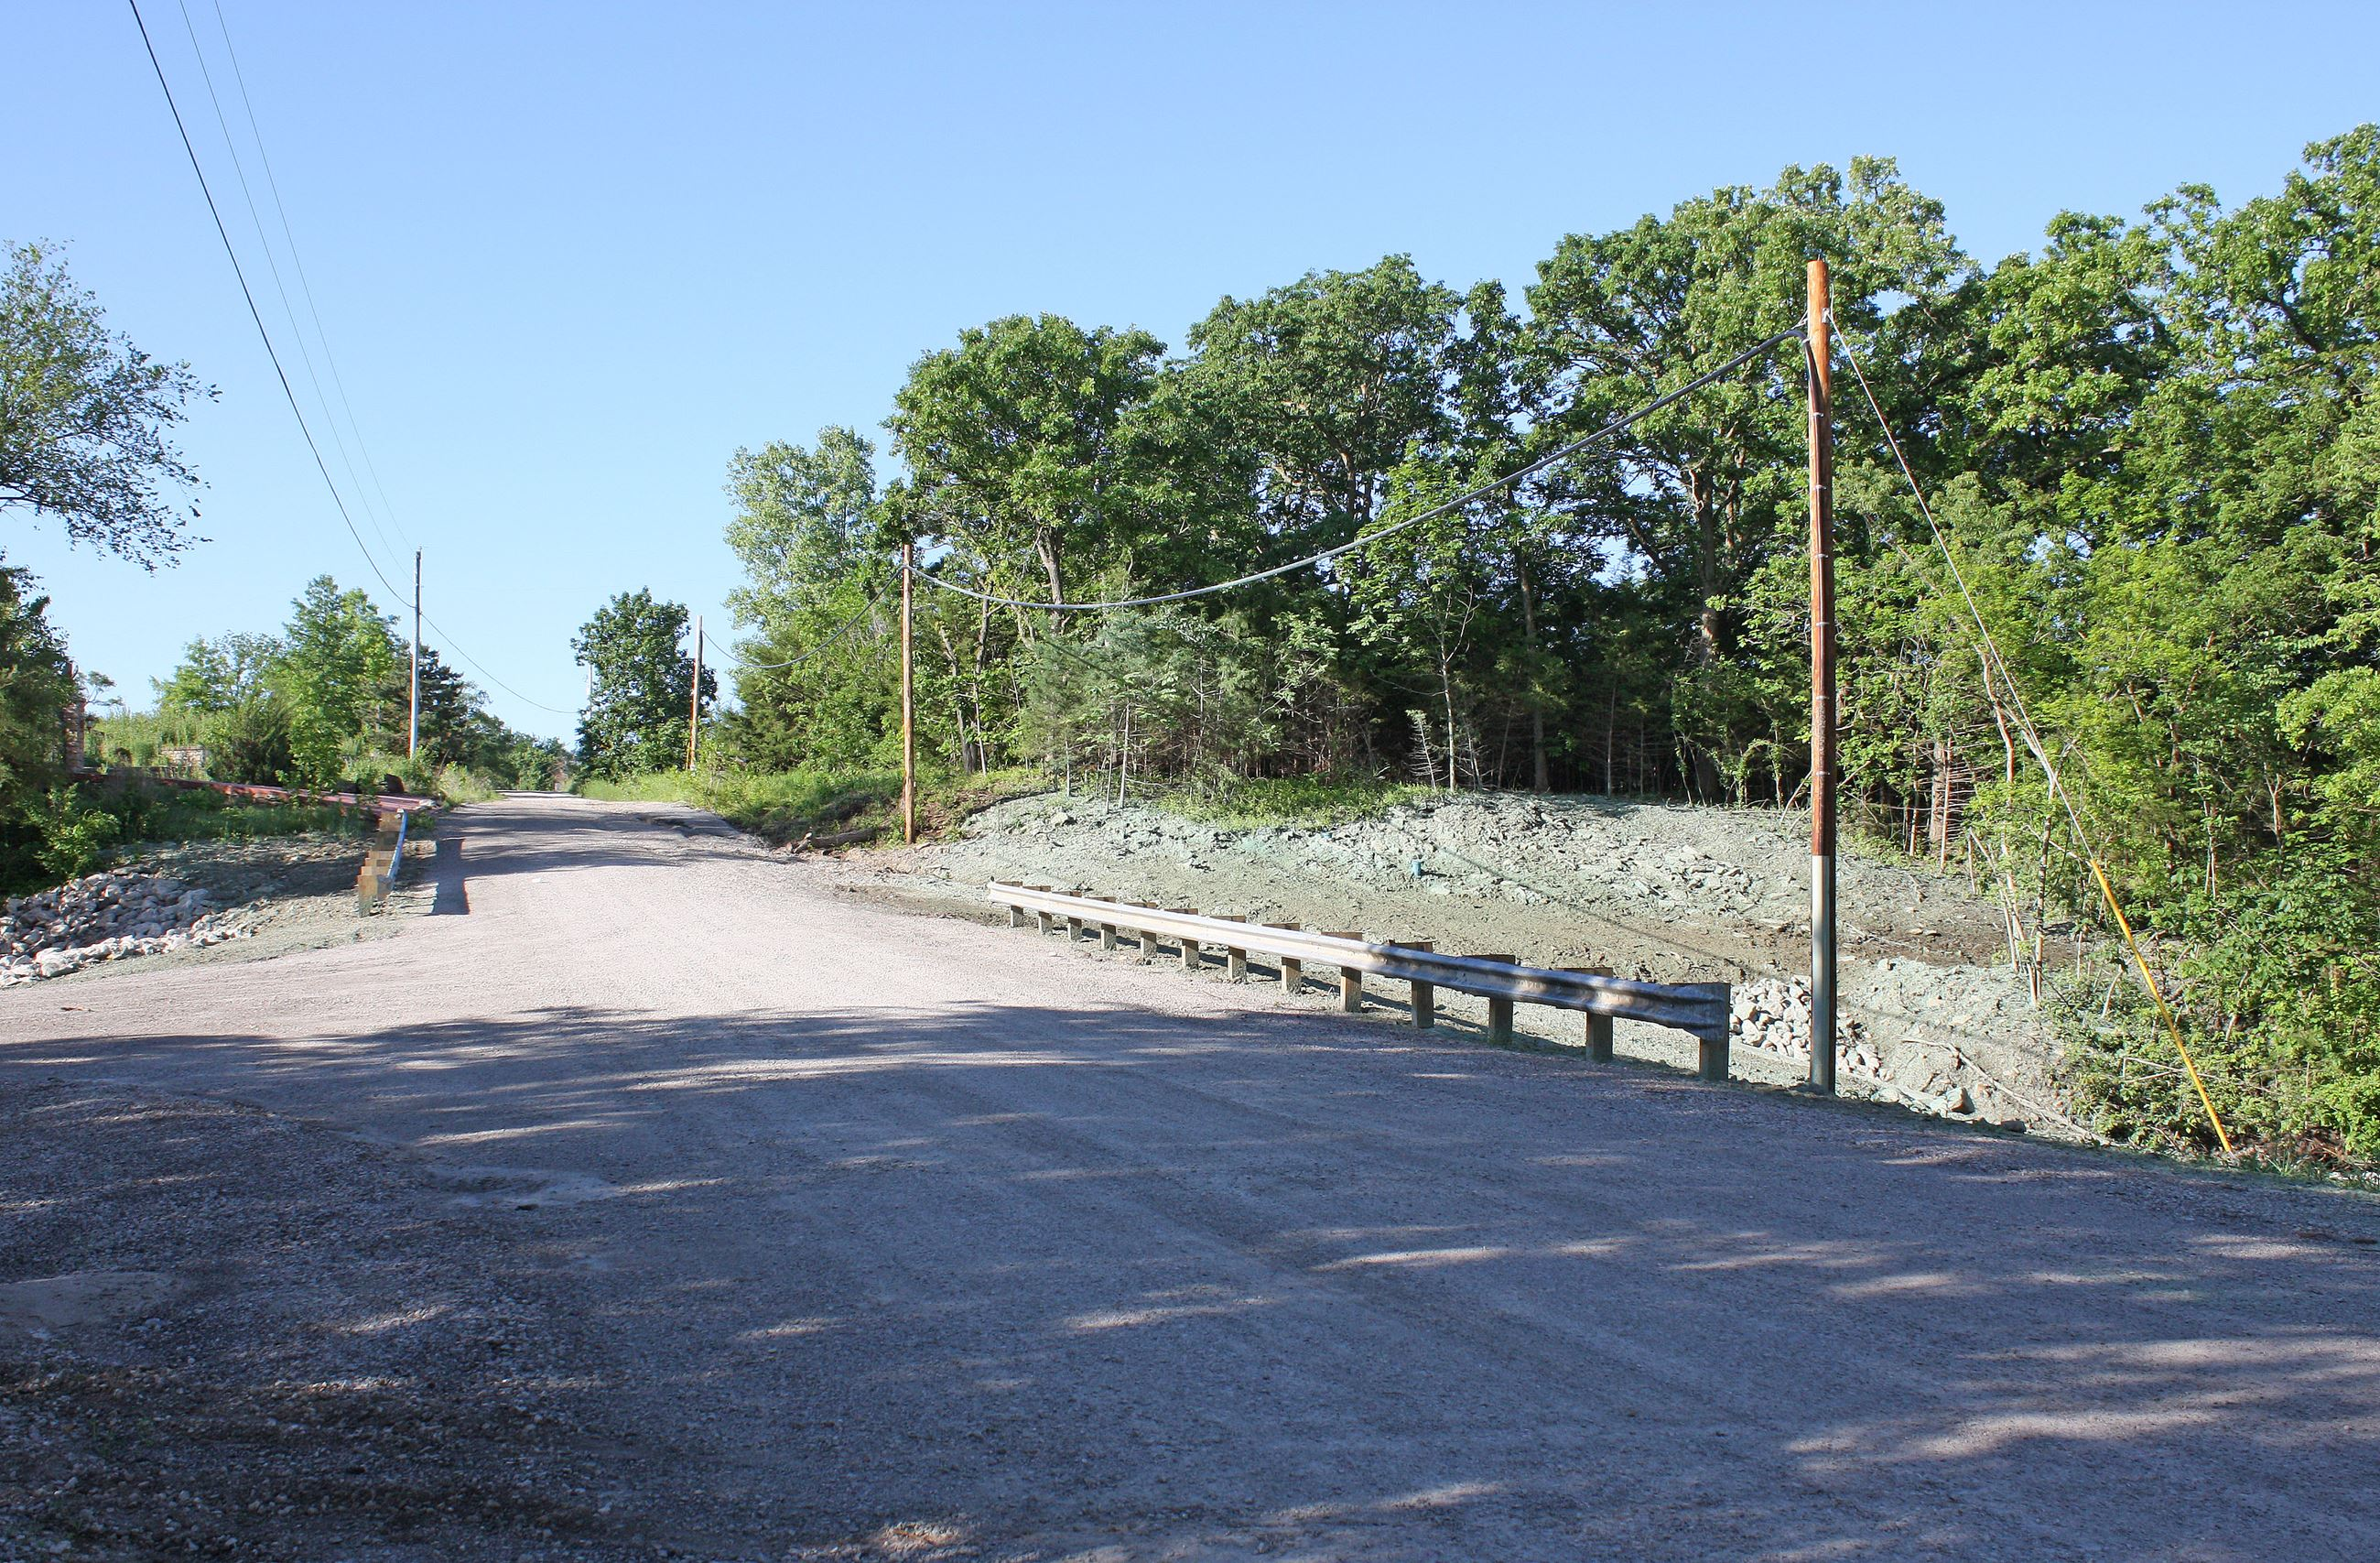 An image of the newly-reopened Lone Elm Road bridge between U.S. 169 and North Street. The image fac